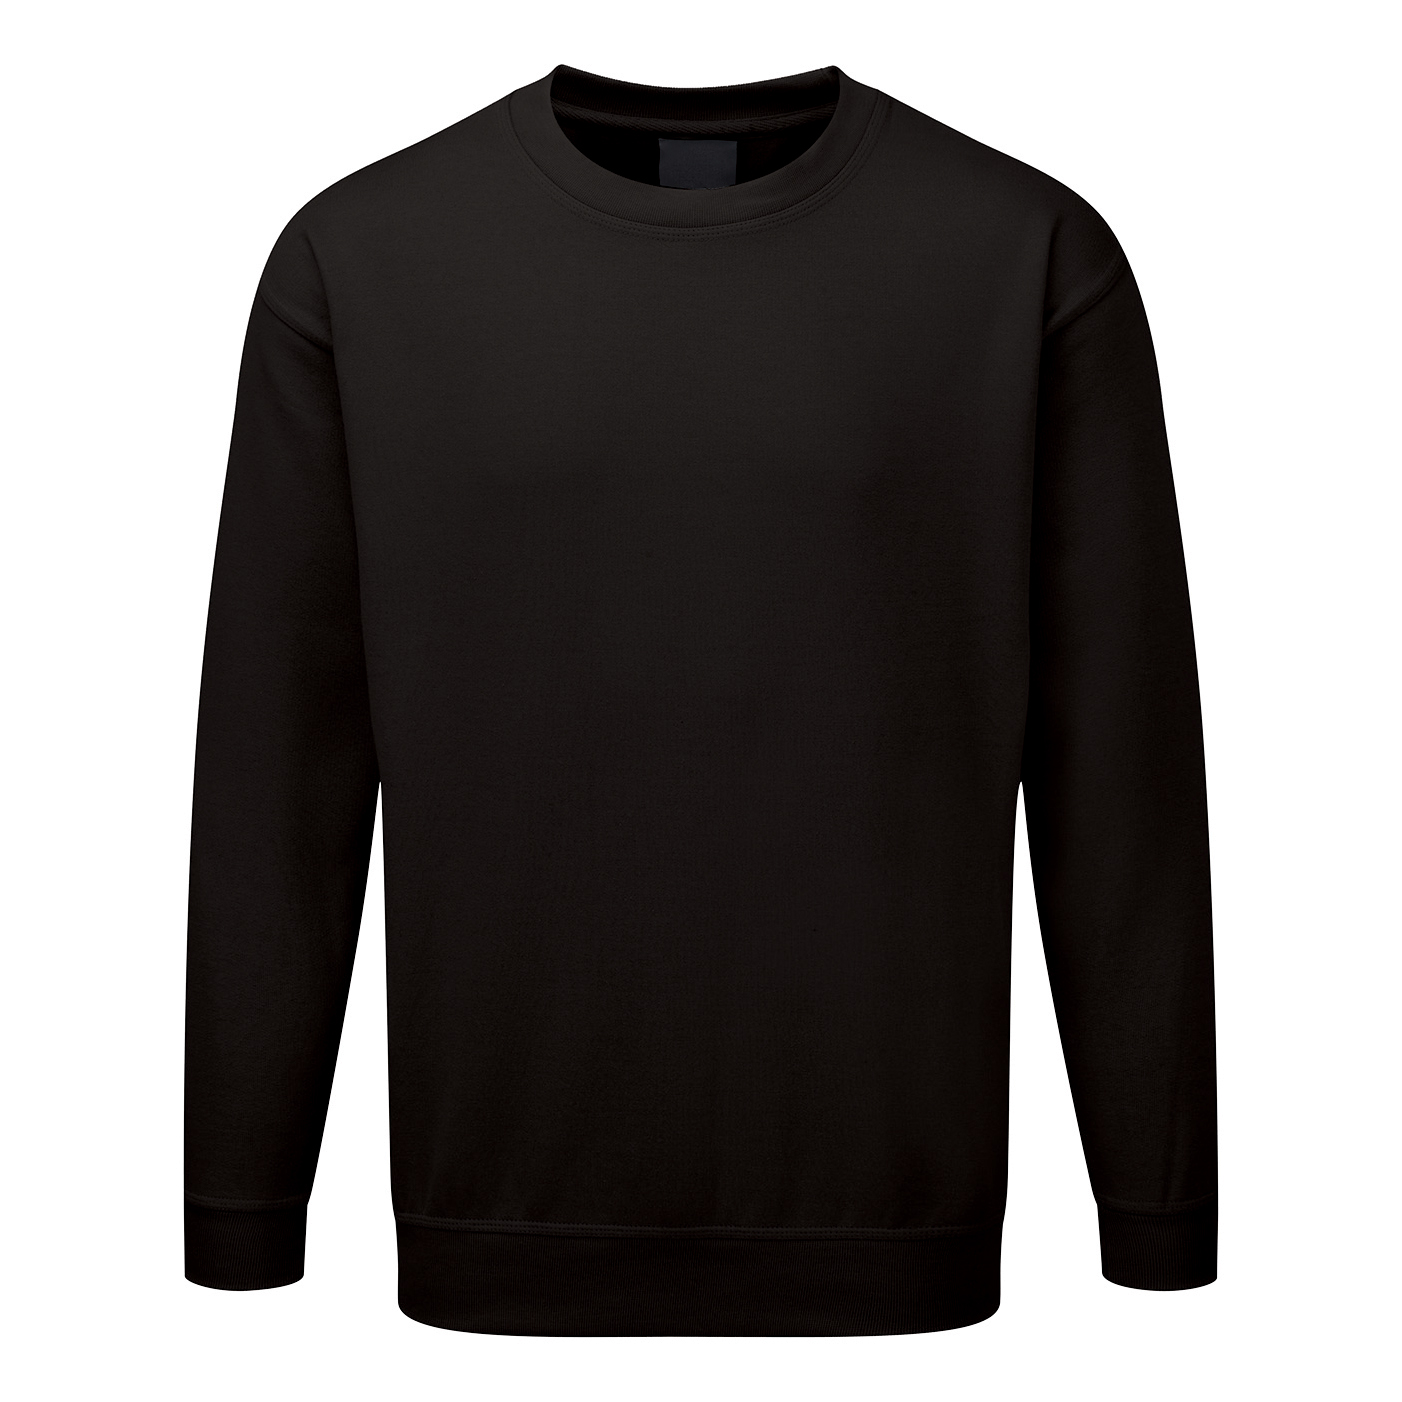 Sweatshirts / Jumpers / Hoodies Click Workwear Sweatshirt Polycotton 300gsm Medium Black Ref CLPCSBLM *1-3 Days Lead Time*